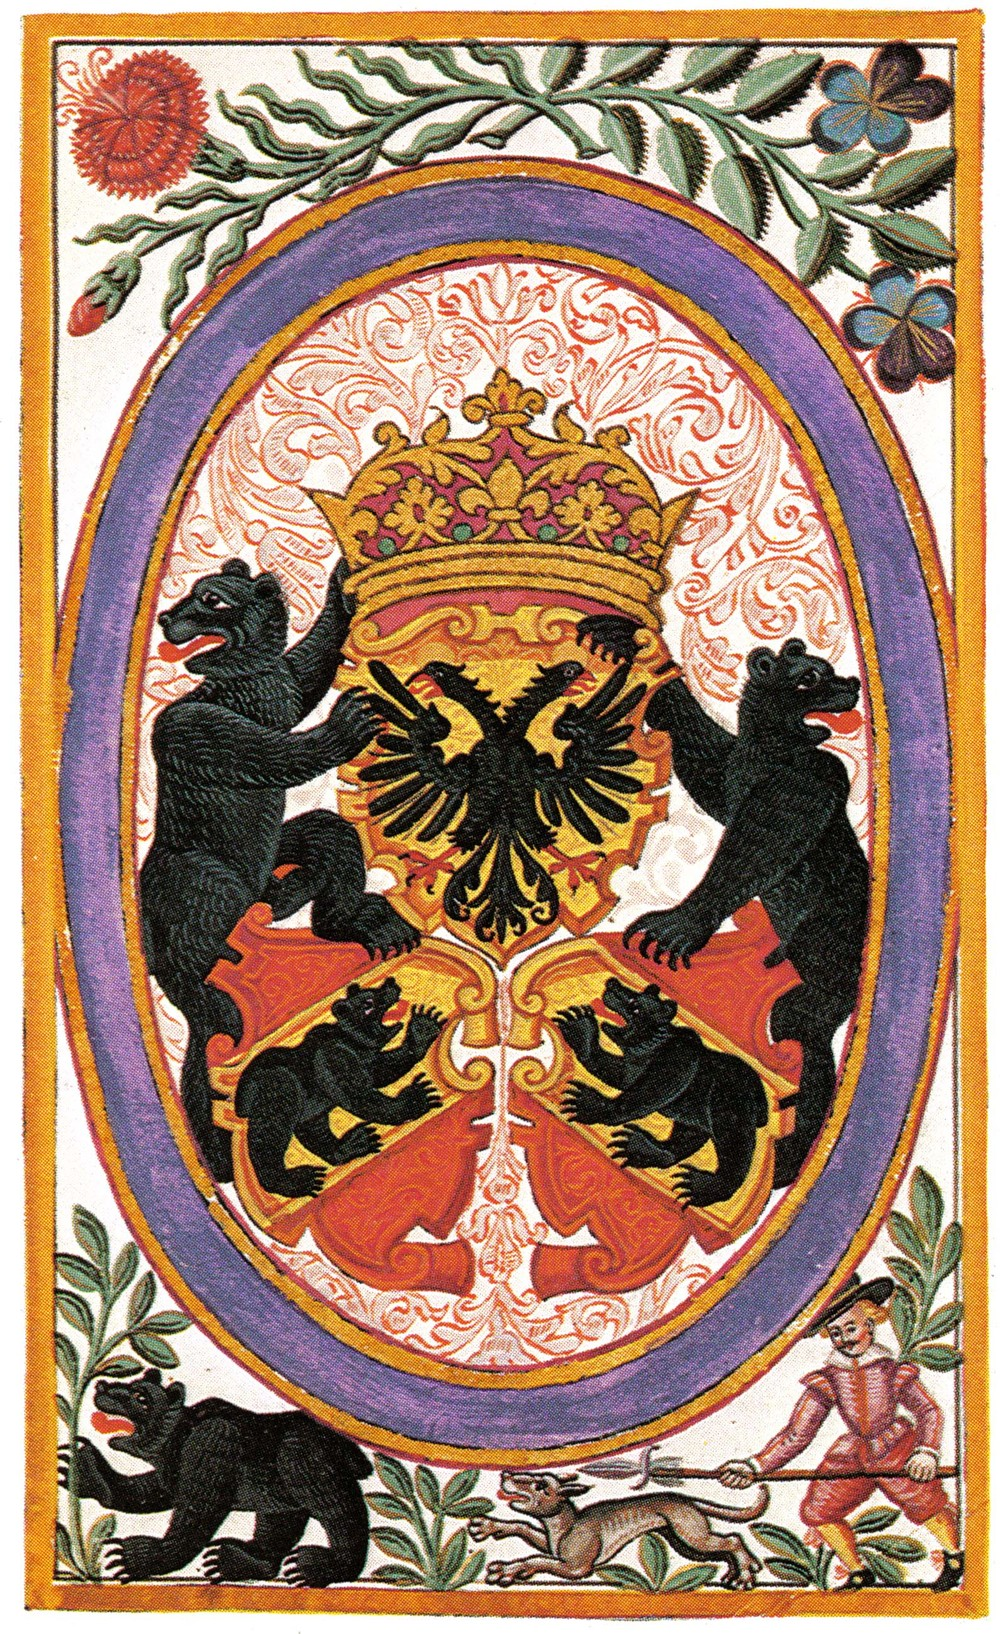 Berne_Imperial_City_Coat_of_Arms,_1620.jpg